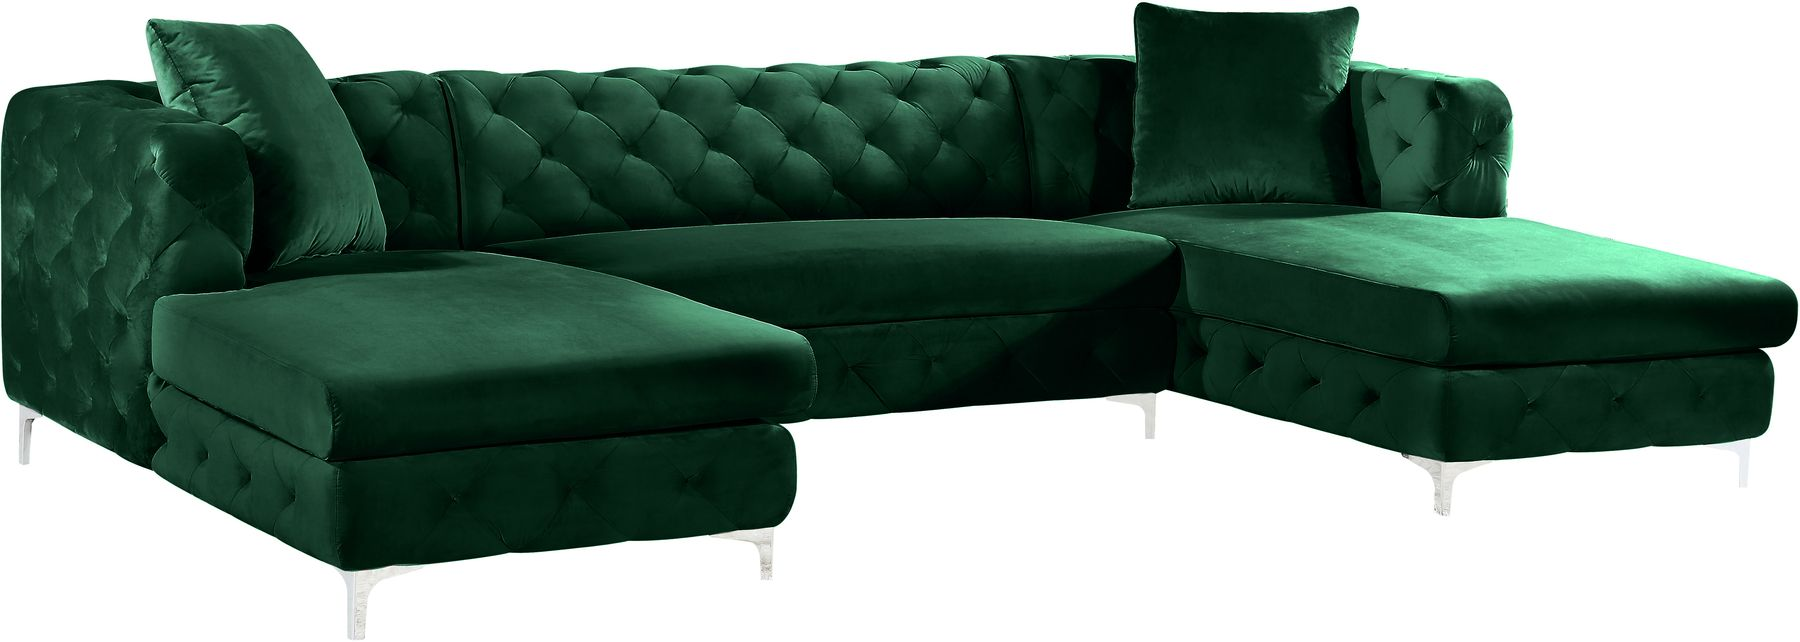 Pin On Sectional Sofas